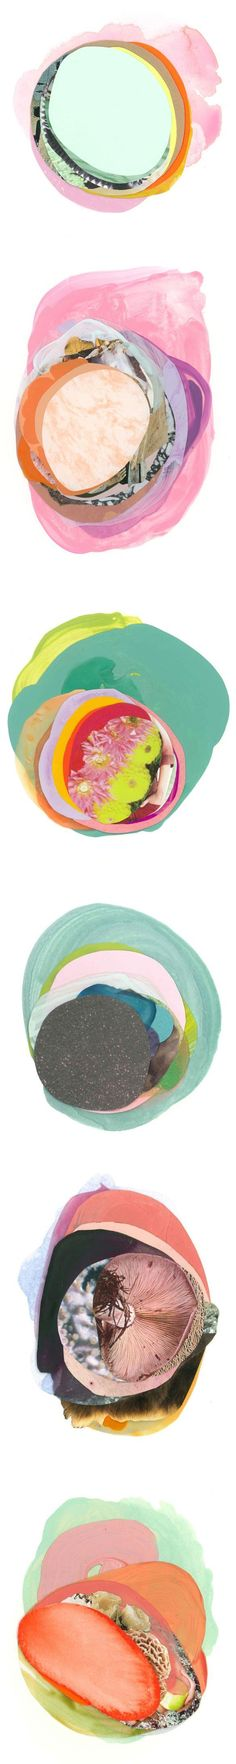 """You know how they say """"art feeds the soul""""… well, these deliciously layered, sandwich-like collages could feed me forever! / mixed media pieces by Austin based artist Xochi Solis /"""